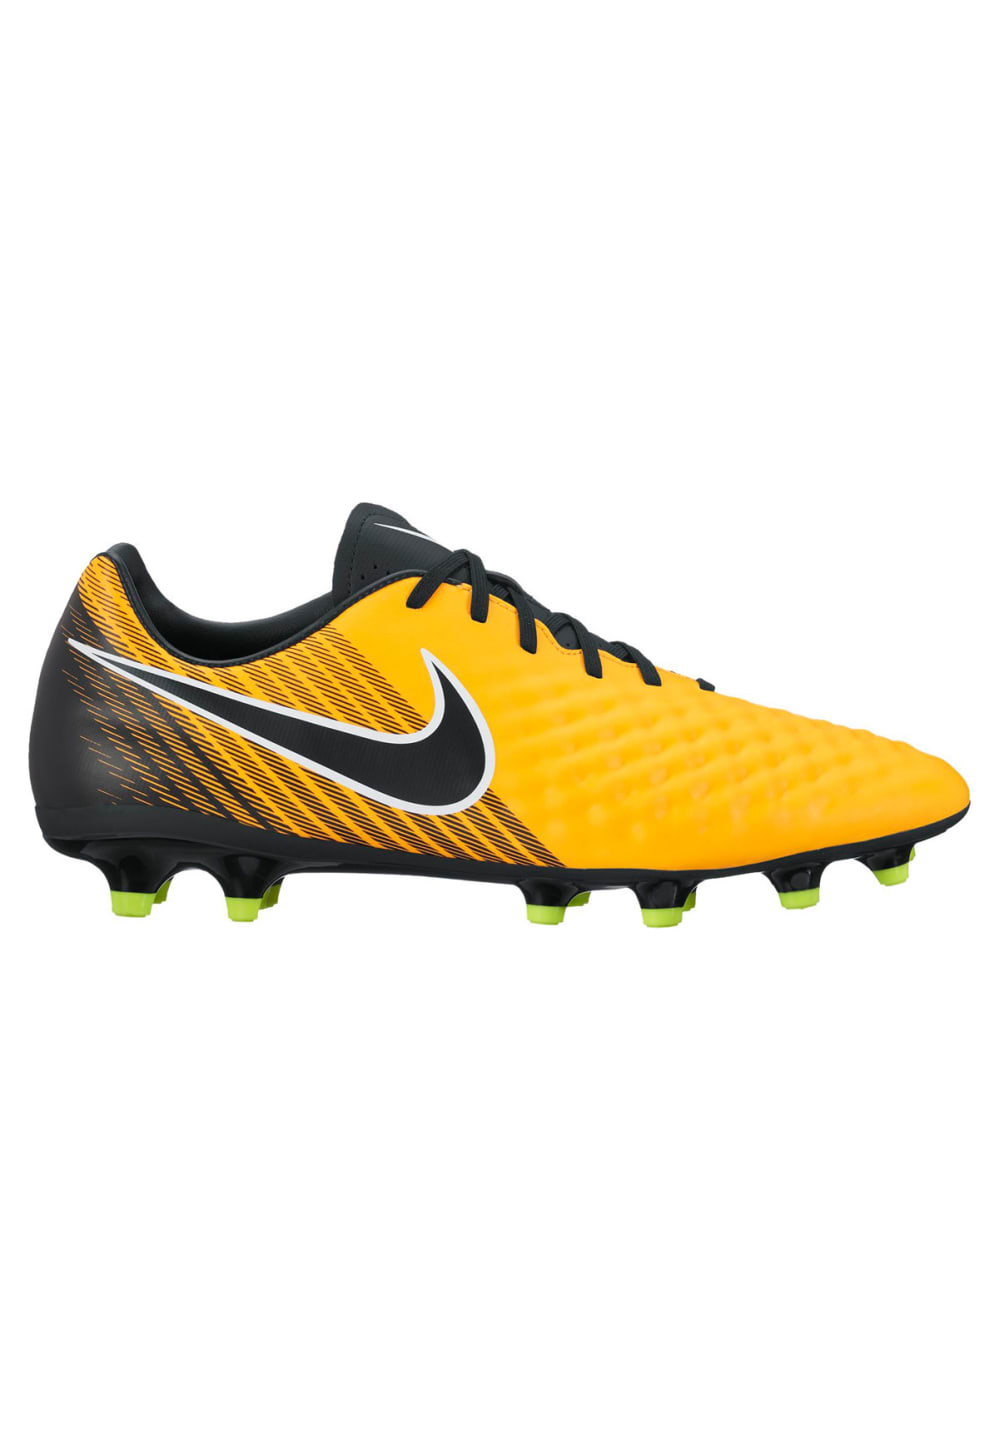 ebfcd4fb5574b Next. Nike. Magista Onda II FG - Football Shoes for Men. €69.95. incl. VAT,  plus shipping costs